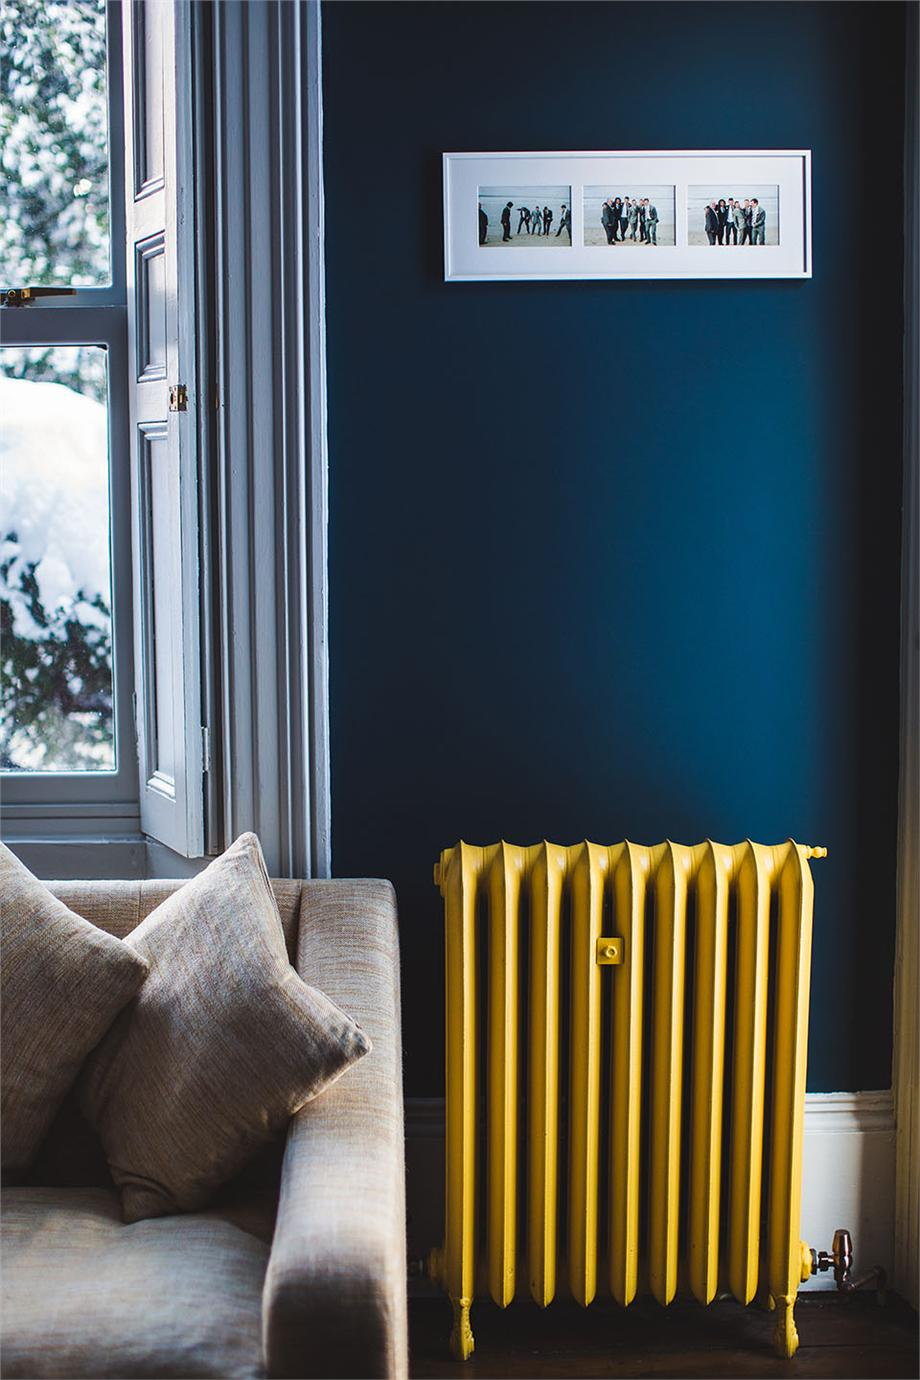 9 Ways You Can Repurpose a Radiator